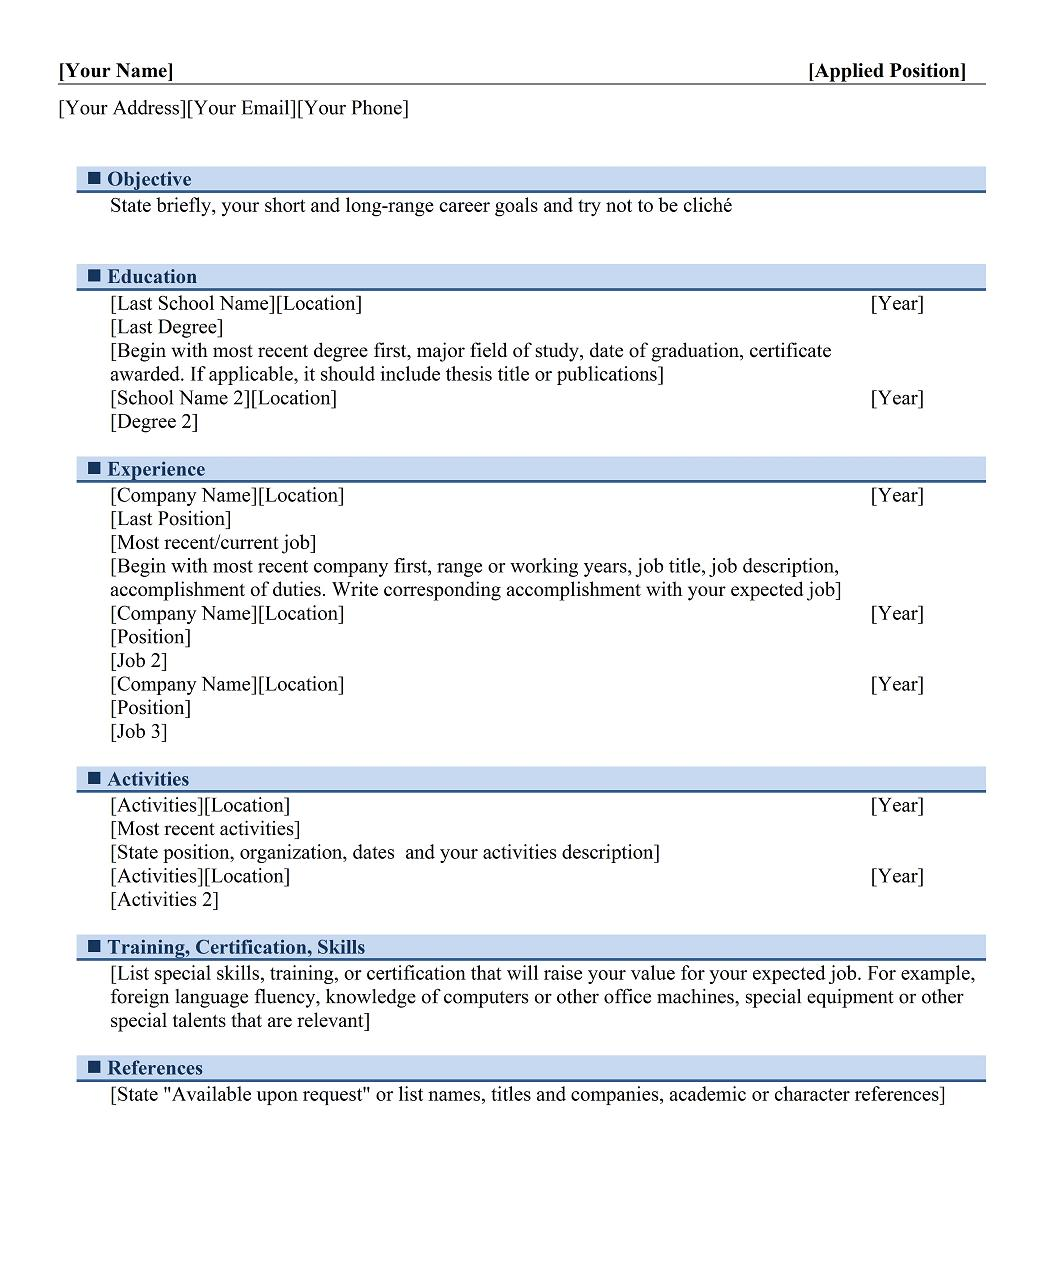 best professional resume layout examples and top resume keywords chronological resume example